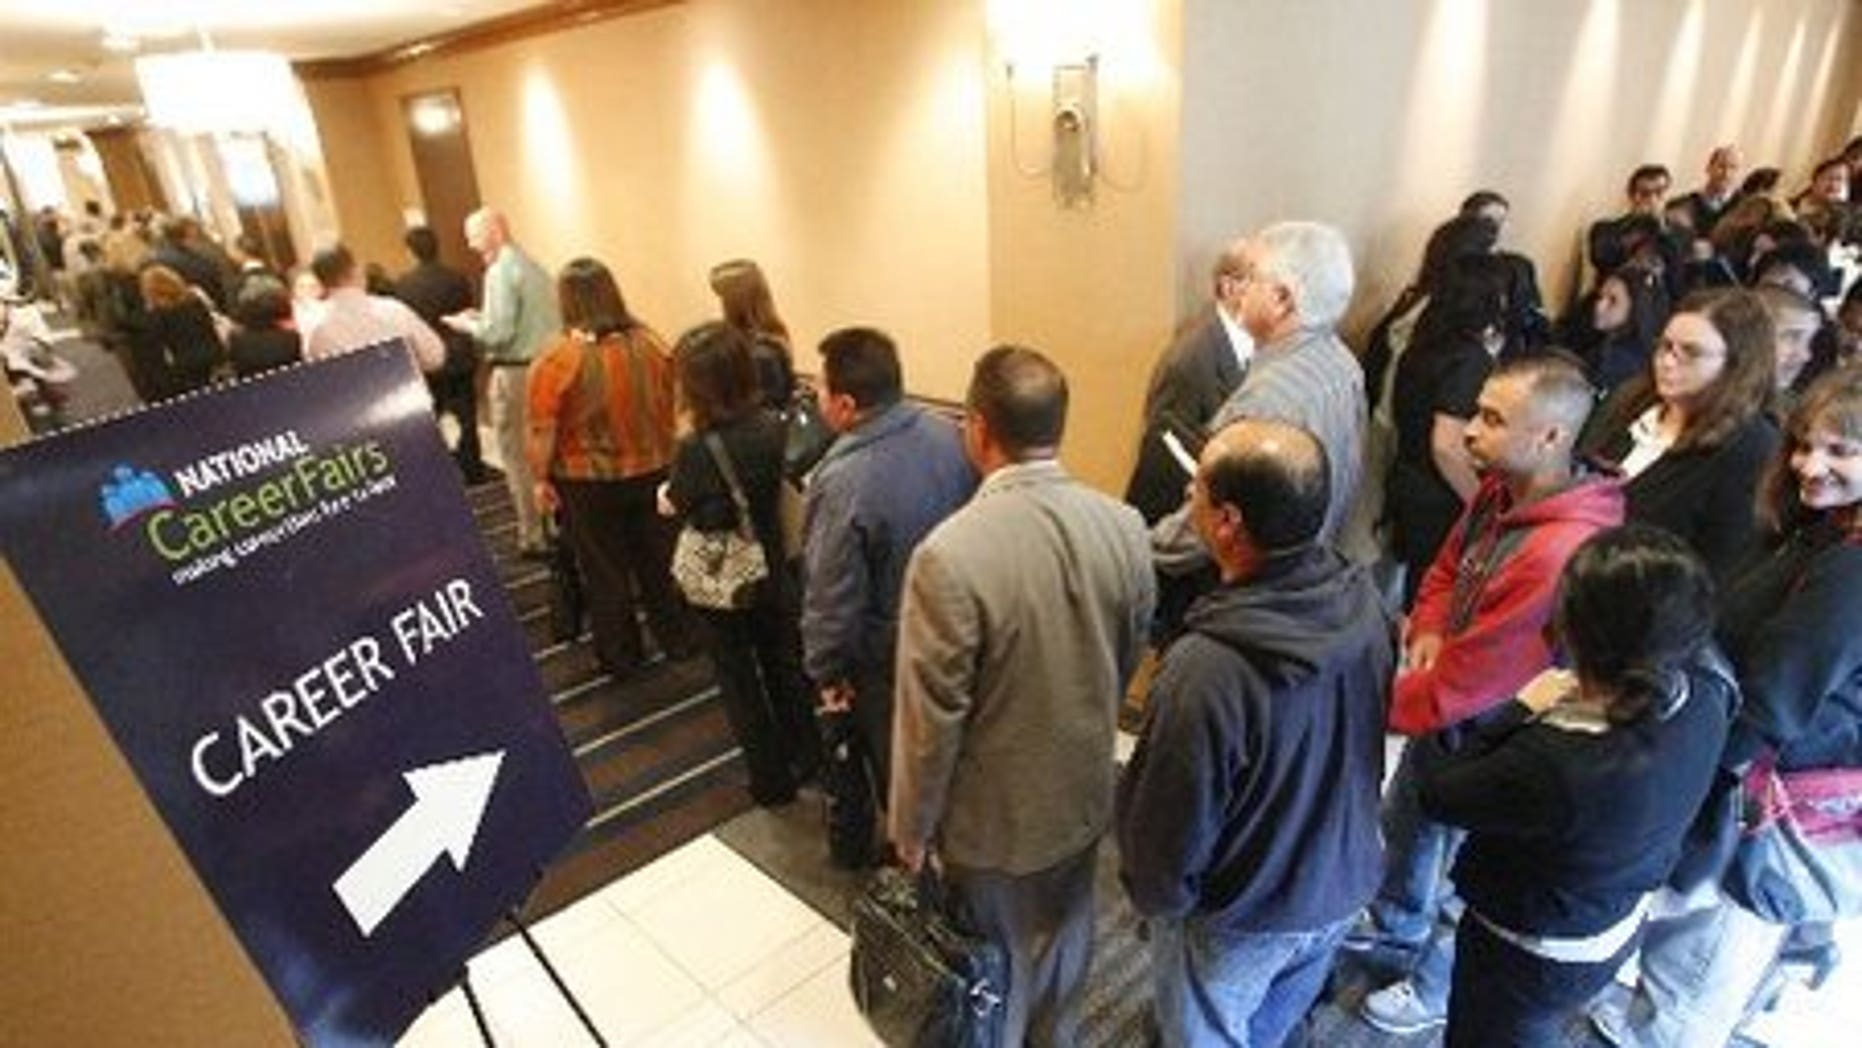 Job seekers line up for a career fair in Ahaheim, Calif.